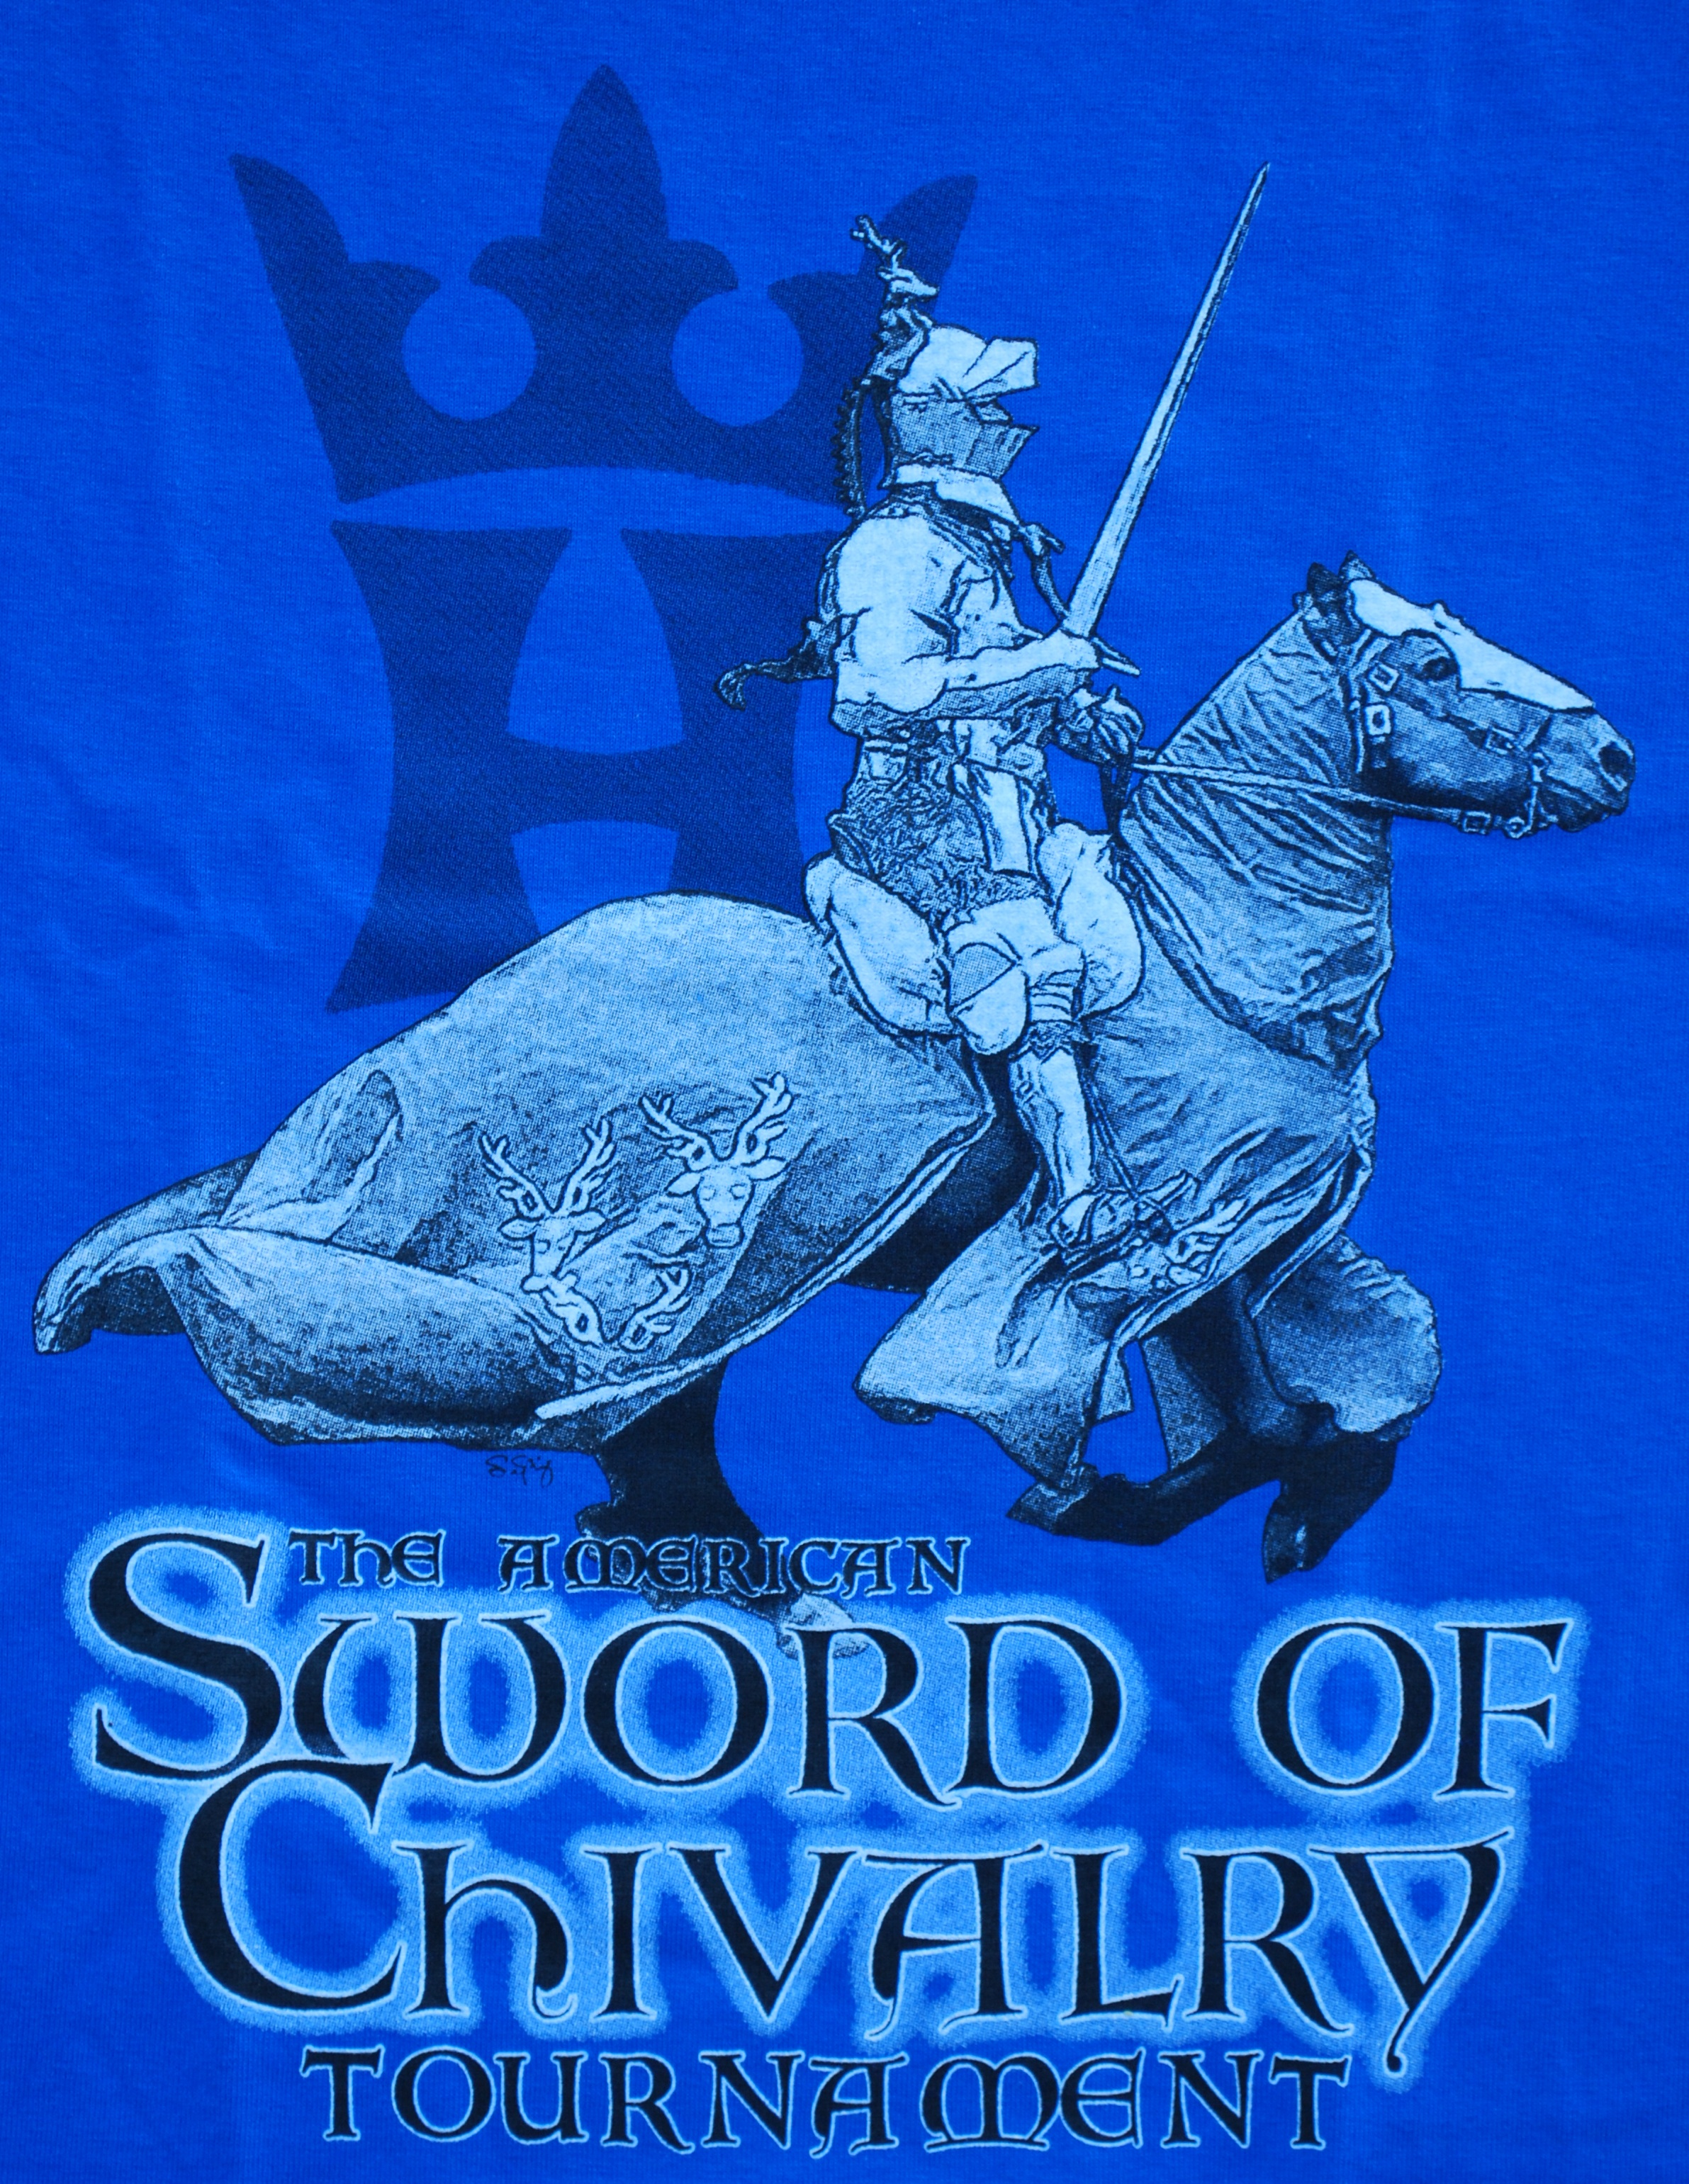 T-Shirt, American Sword of Chivalry Tournament